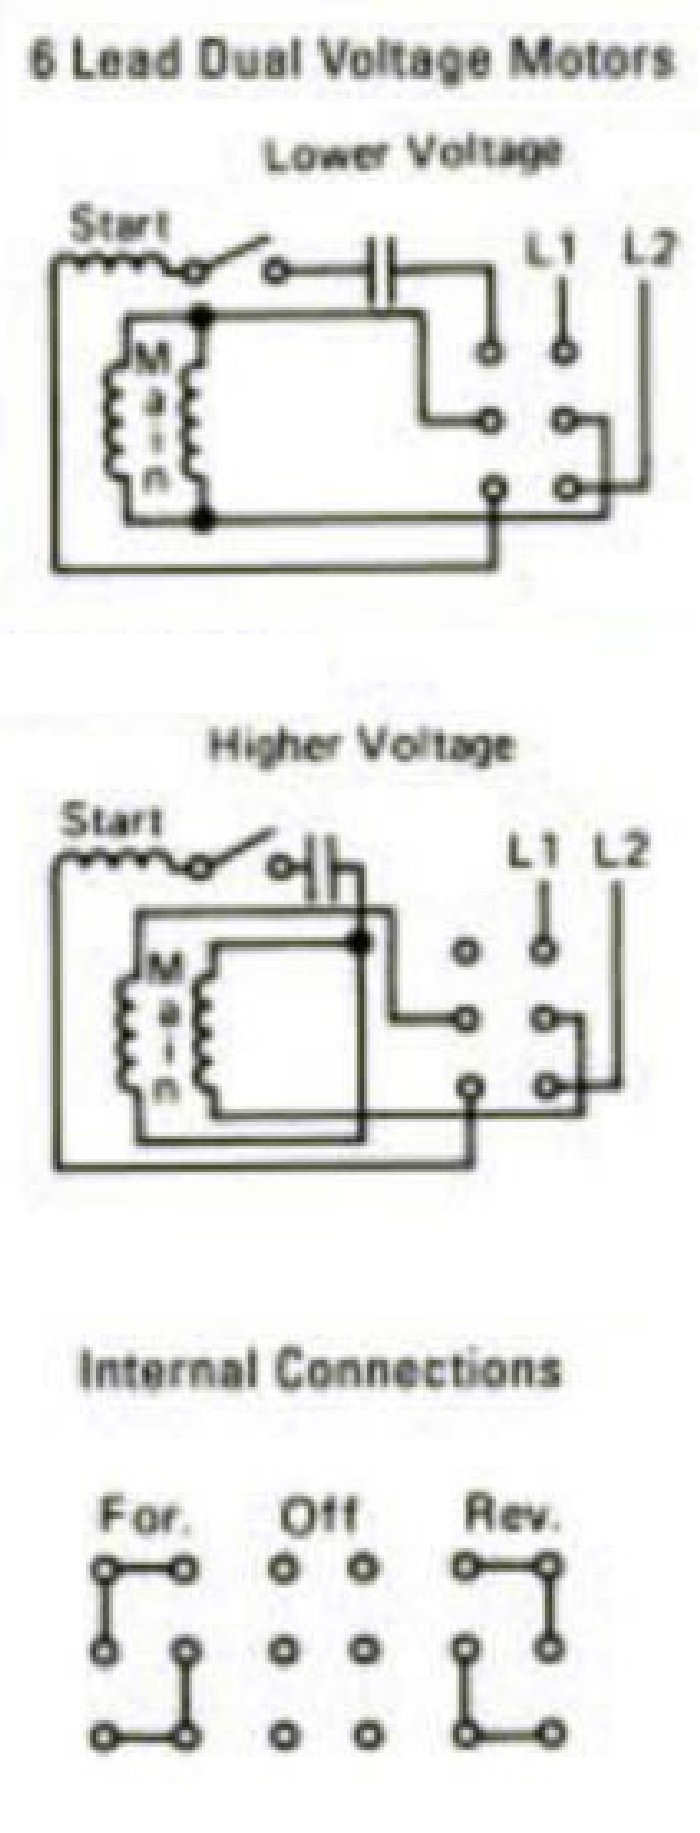 boat lift switch wiring - need help